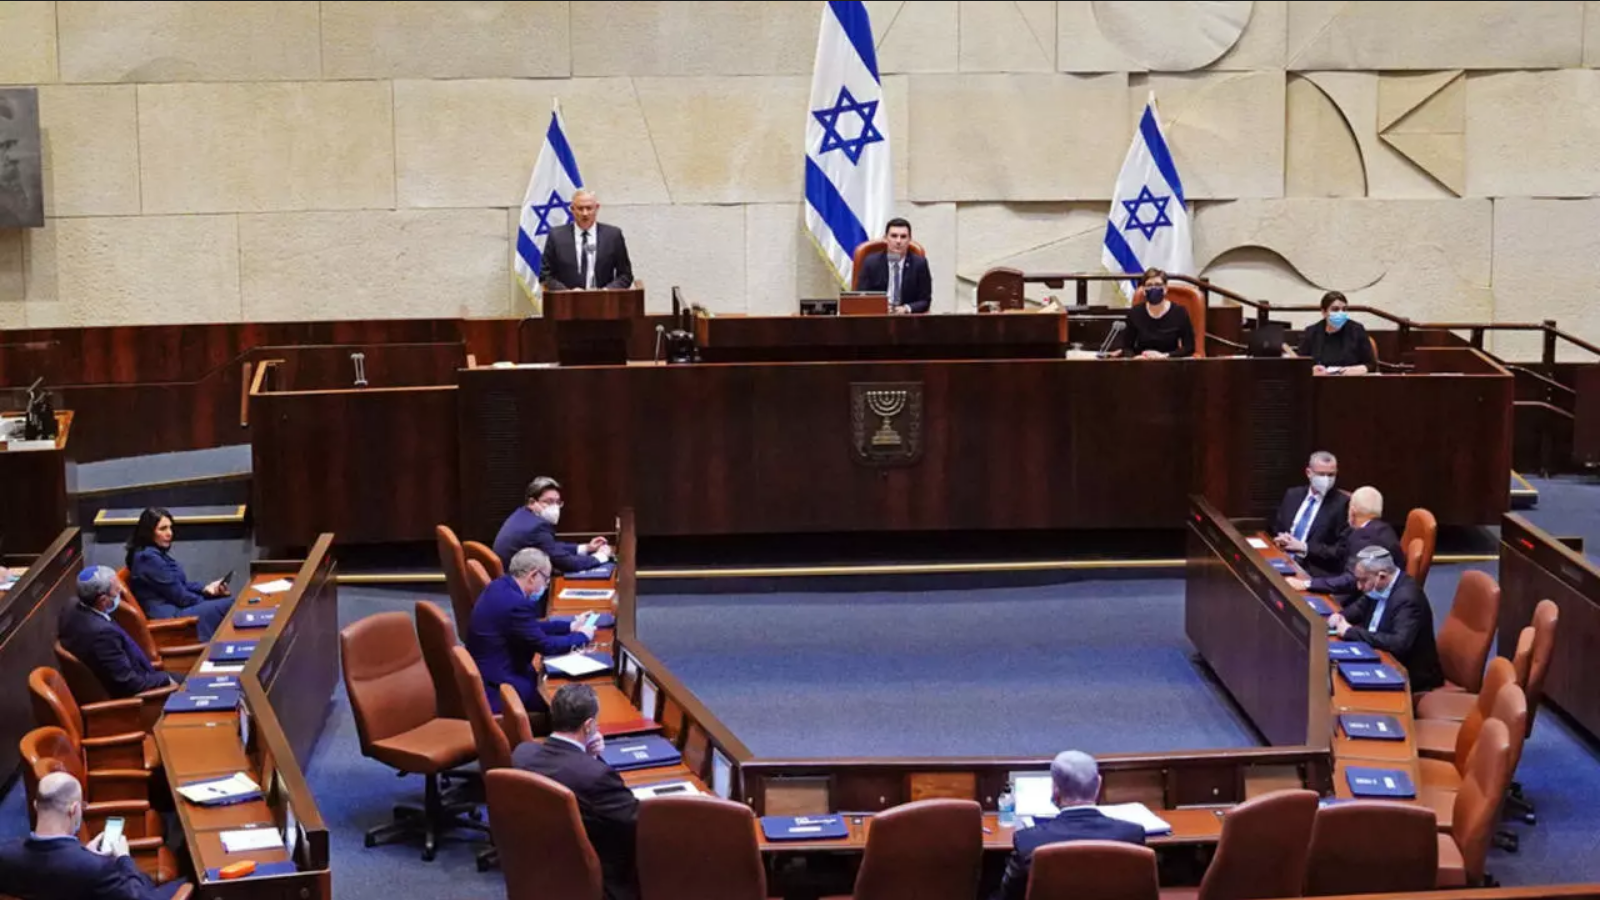 Meeting of the Israeli government